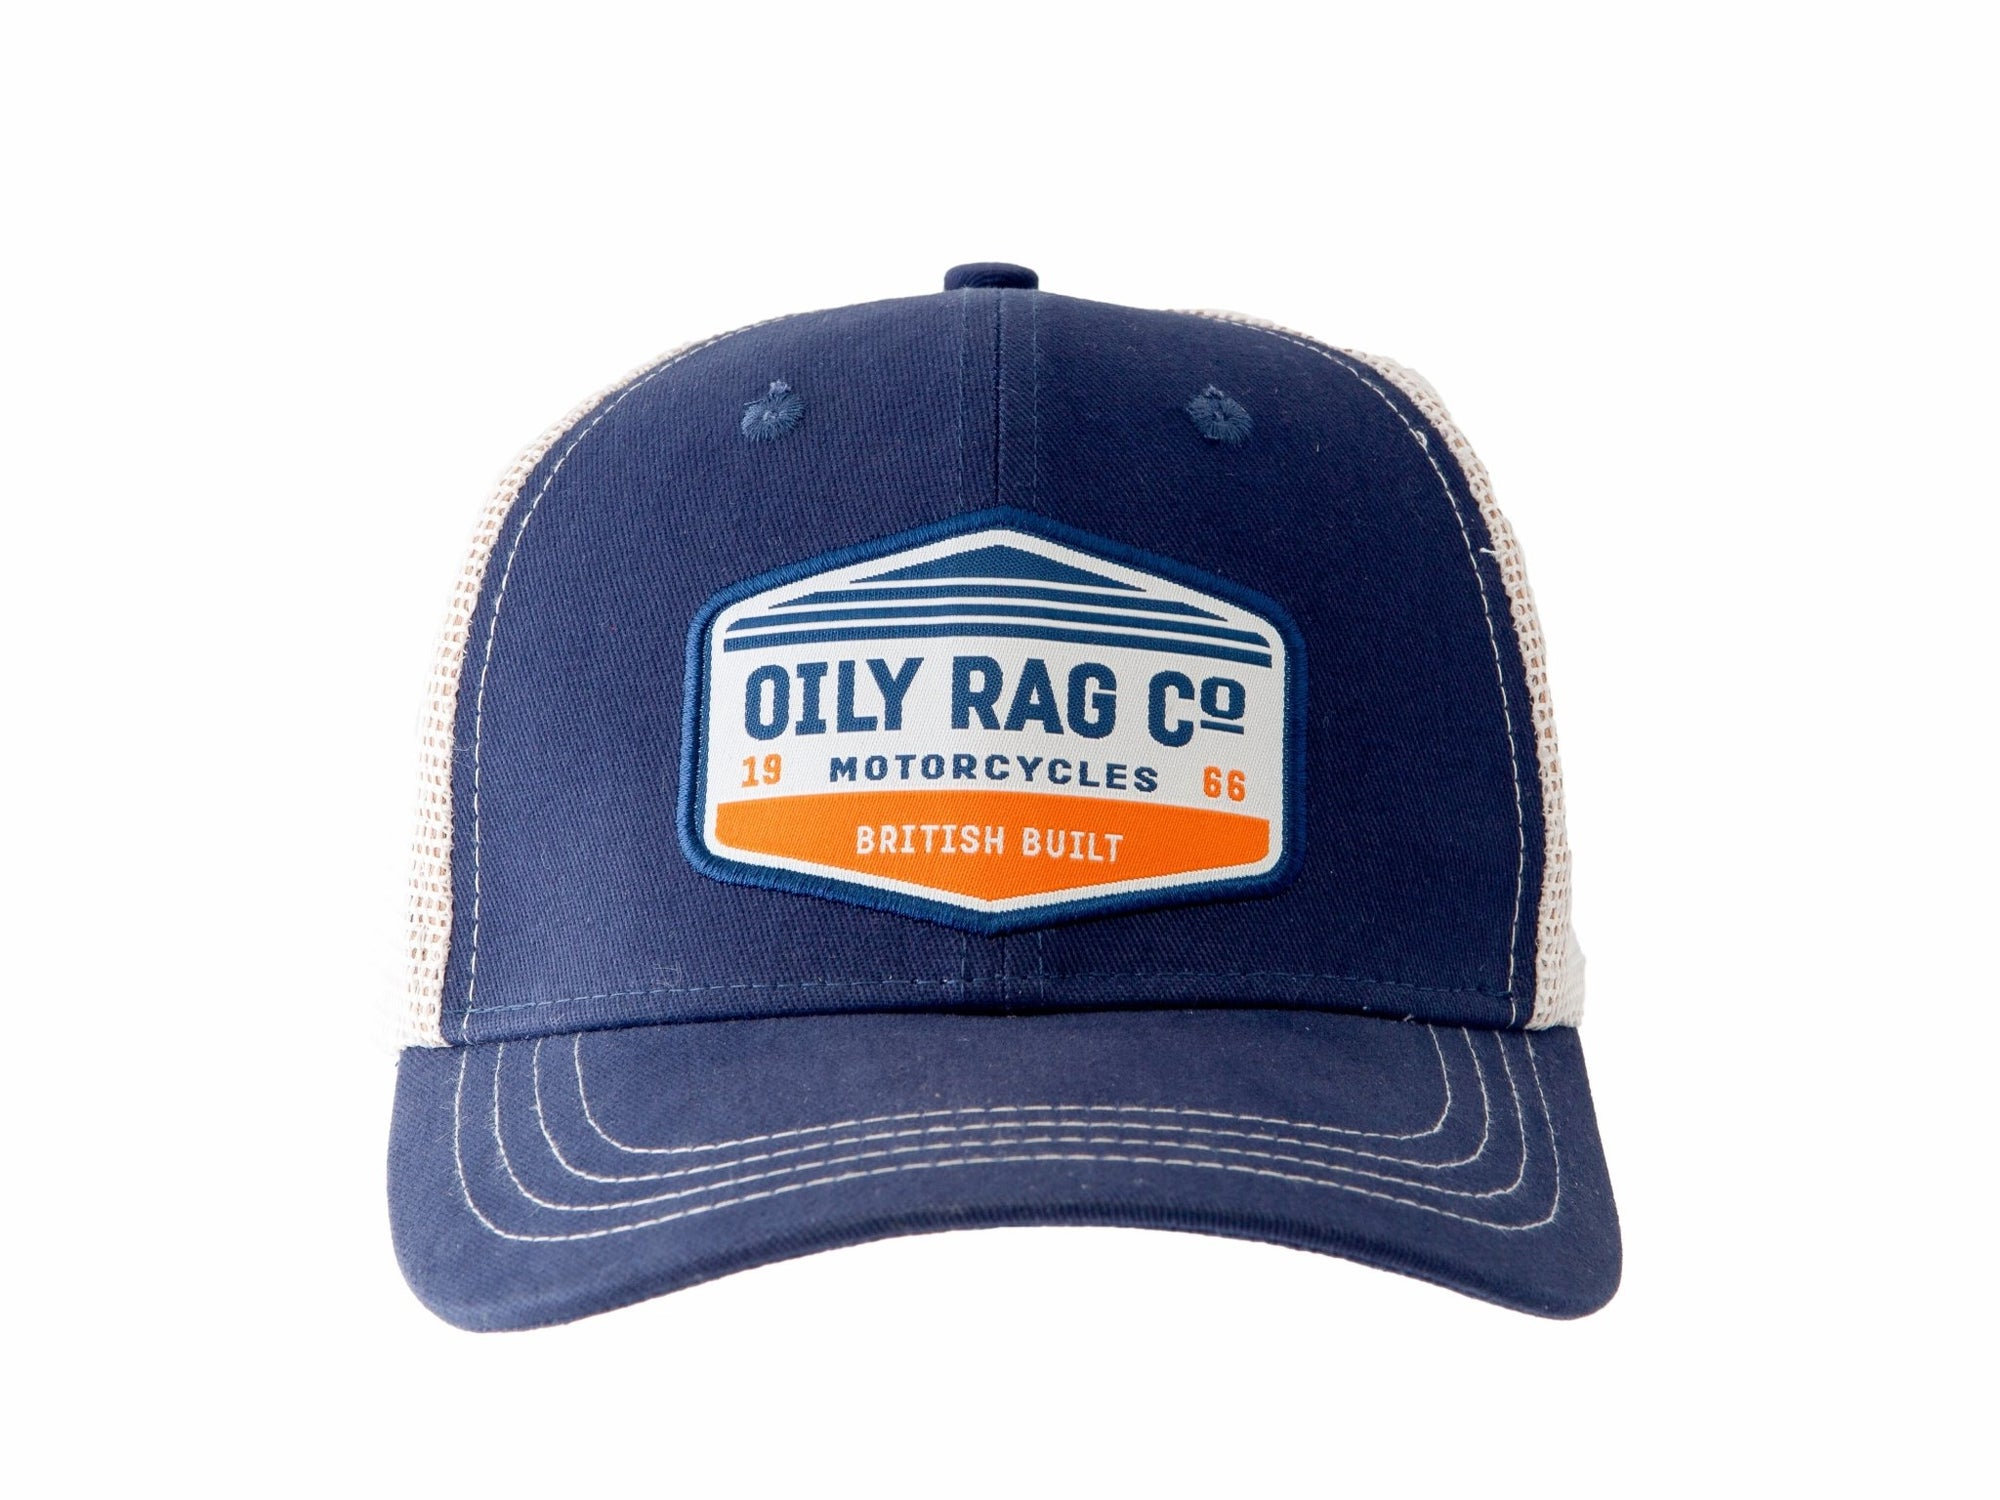 Oily Rag Clothing - Oily Rag Clothing Motorcycles Trucker Cap - Caps - Salt Flats Clothing